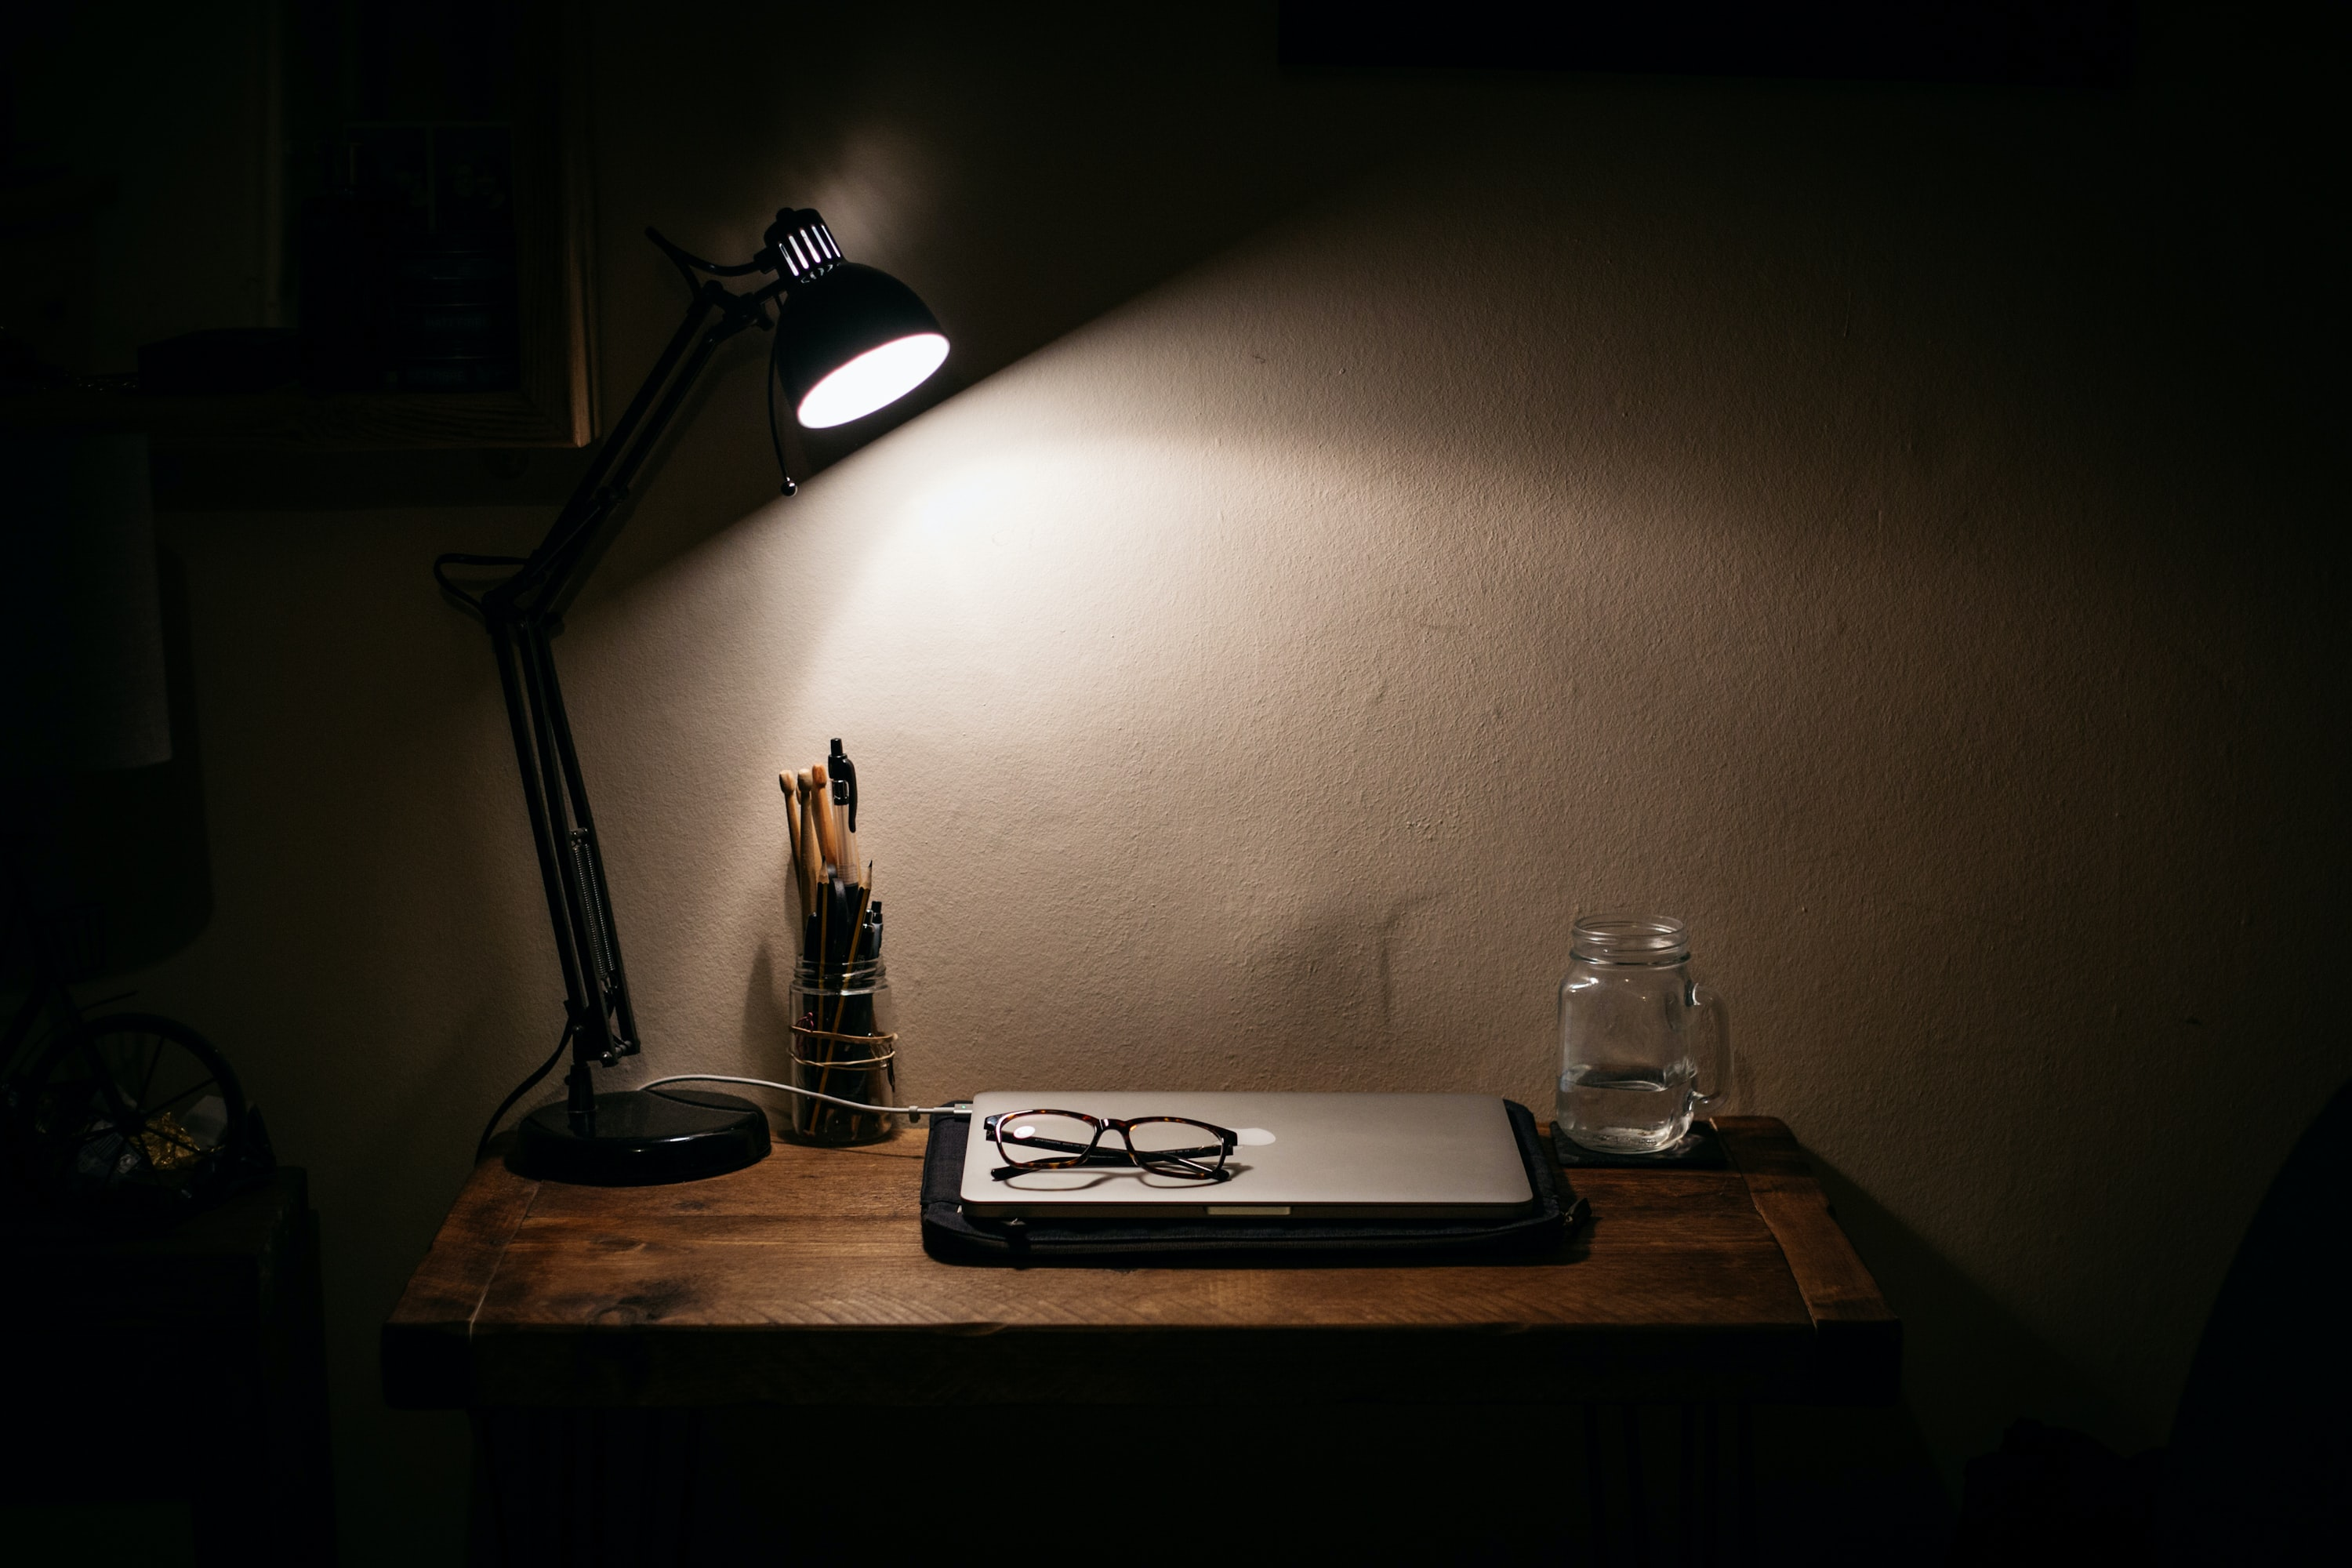 black desk lamp on brown wooden table